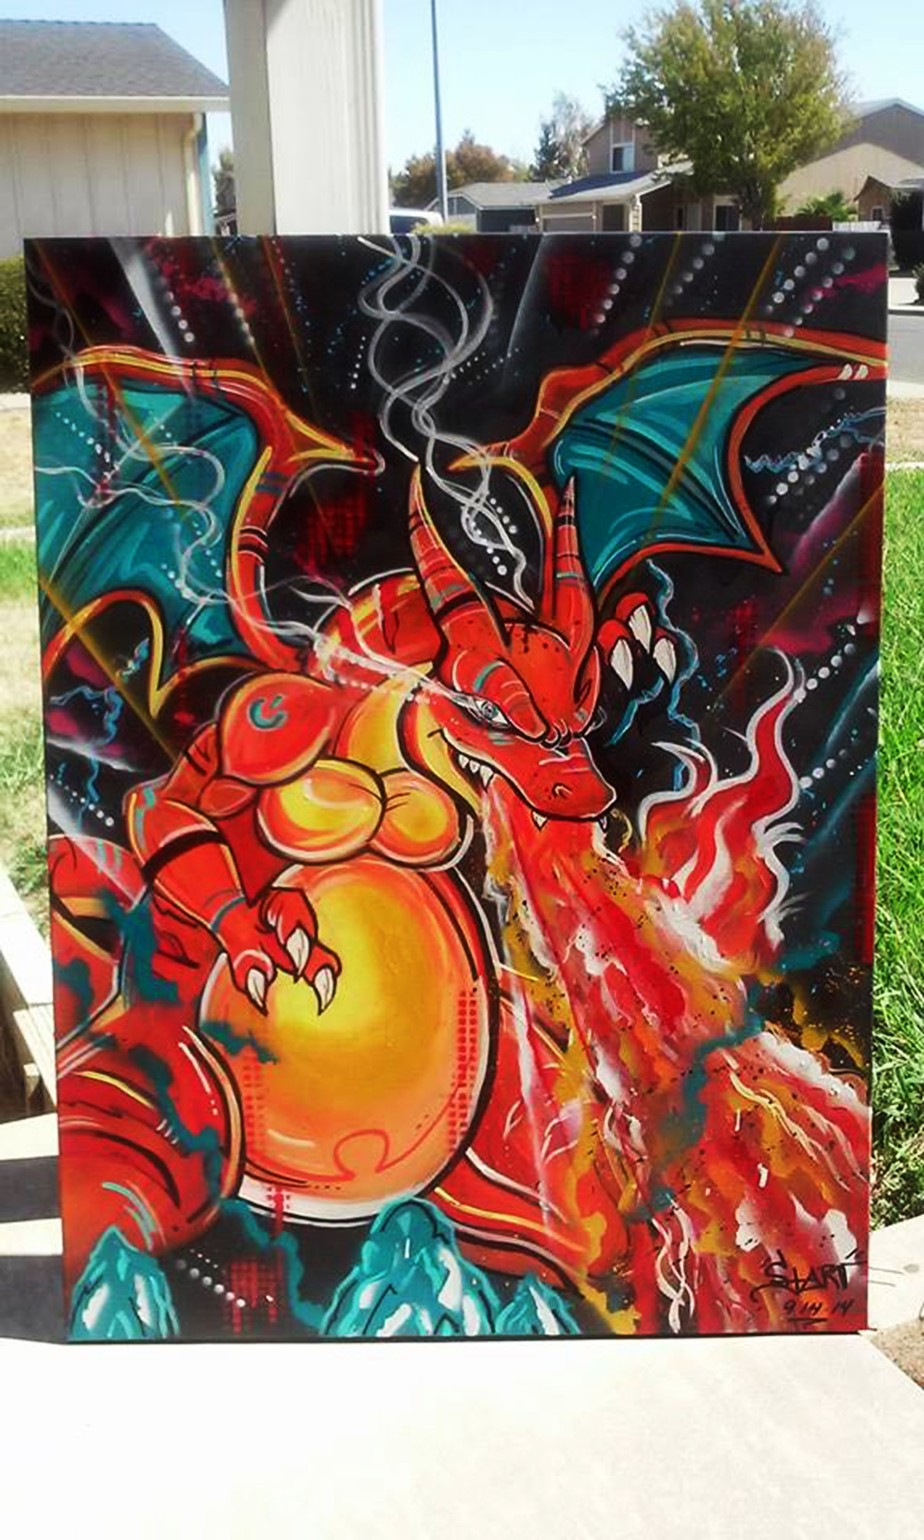 Charizard Painting by Demaries Isom aka Starv